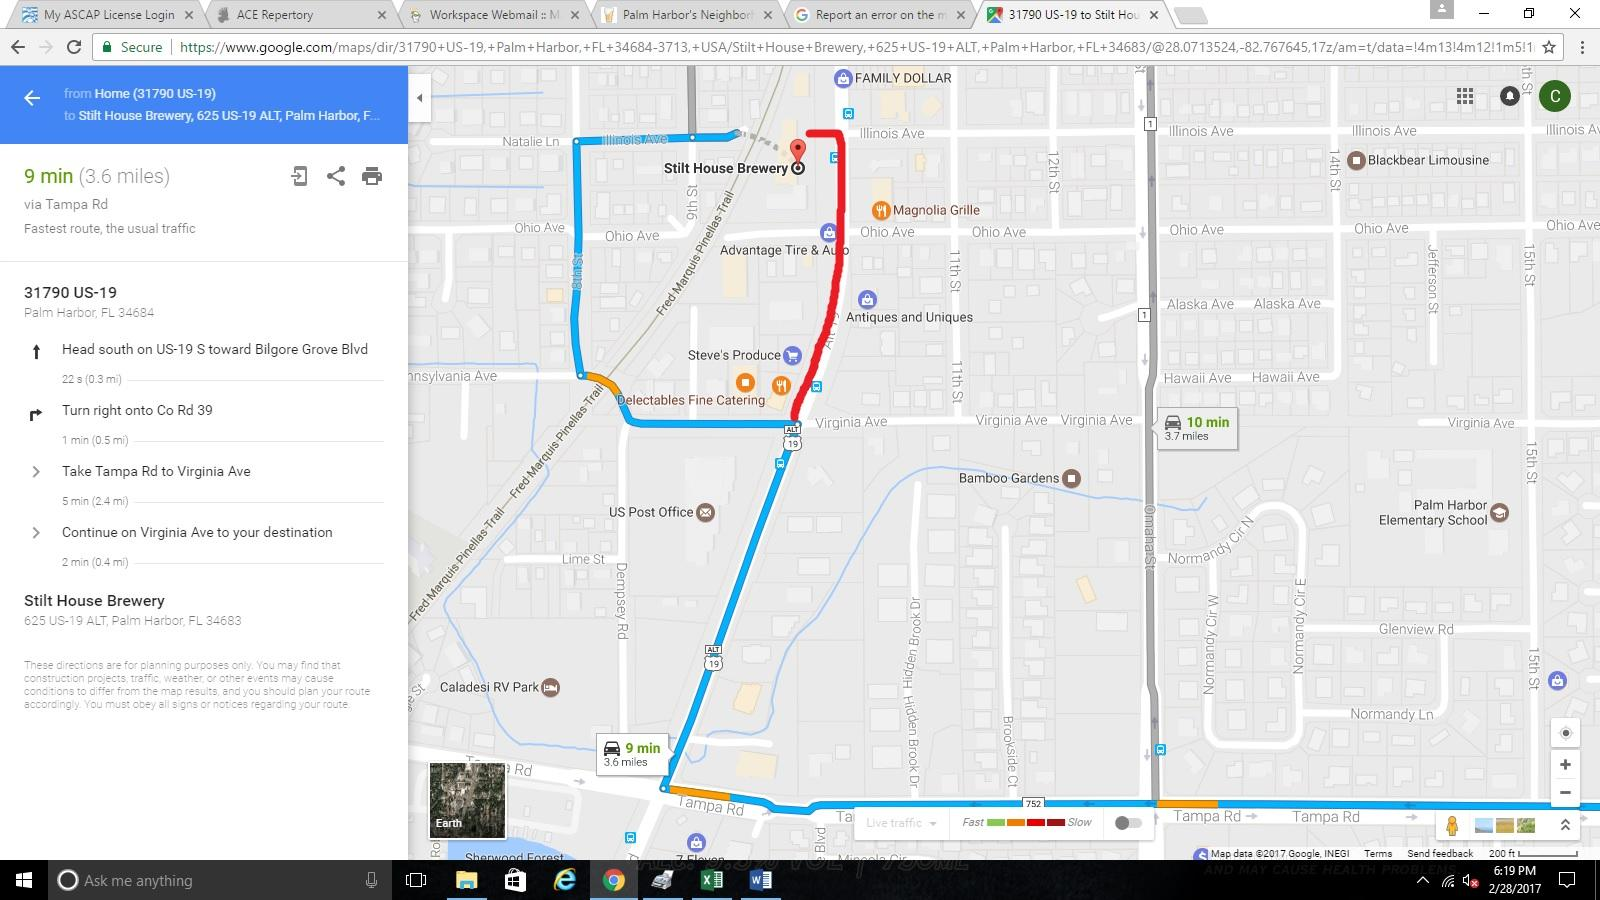 Google Maps directions are incorrect! - Google Maps Help on google moon, aeronautical maps, topographic maps, online maps, google map maker, yahoo! maps, goolge maps, amazon fire phone maps, msn maps, route planning software, gppgle maps, gogole maps, satellite map images with missing or unclear data, google docs, microsoft maps, google voice, google translate, google search, ipad maps, android maps, road map usa states maps, aerial maps, google goggles, iphone maps, google chrome, google sky, bing maps, google mars, stanford university maps, googlr maps, googie maps, web mapping, waze maps, search maps,